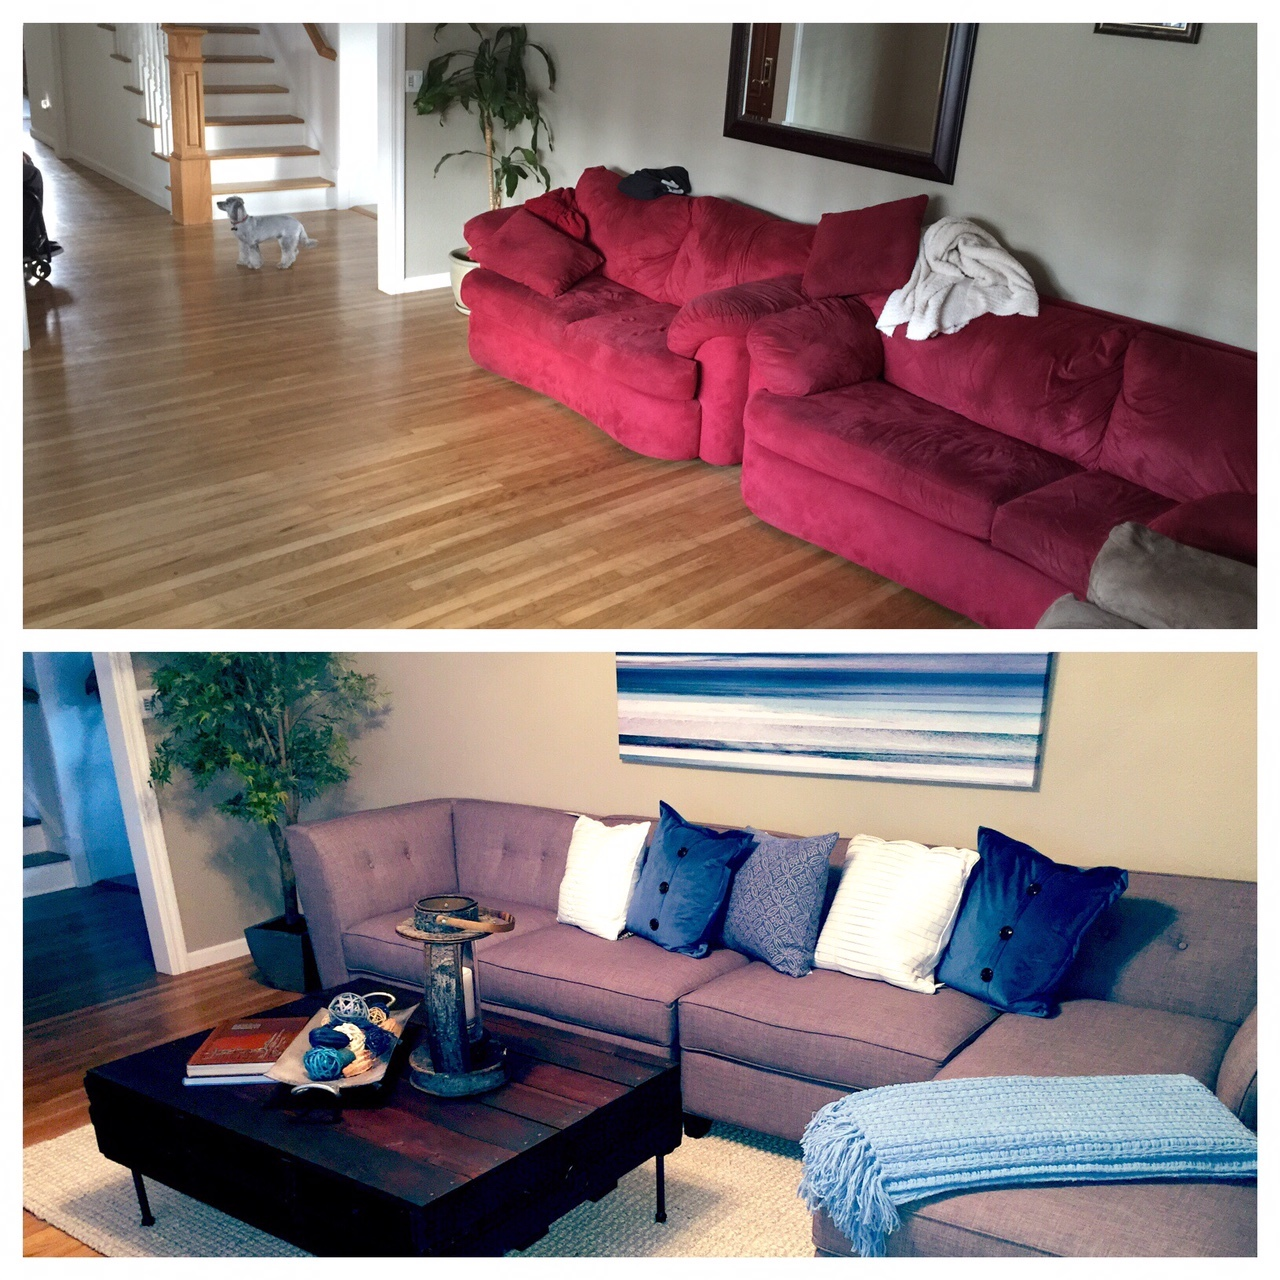 Before & After Interior Decorating